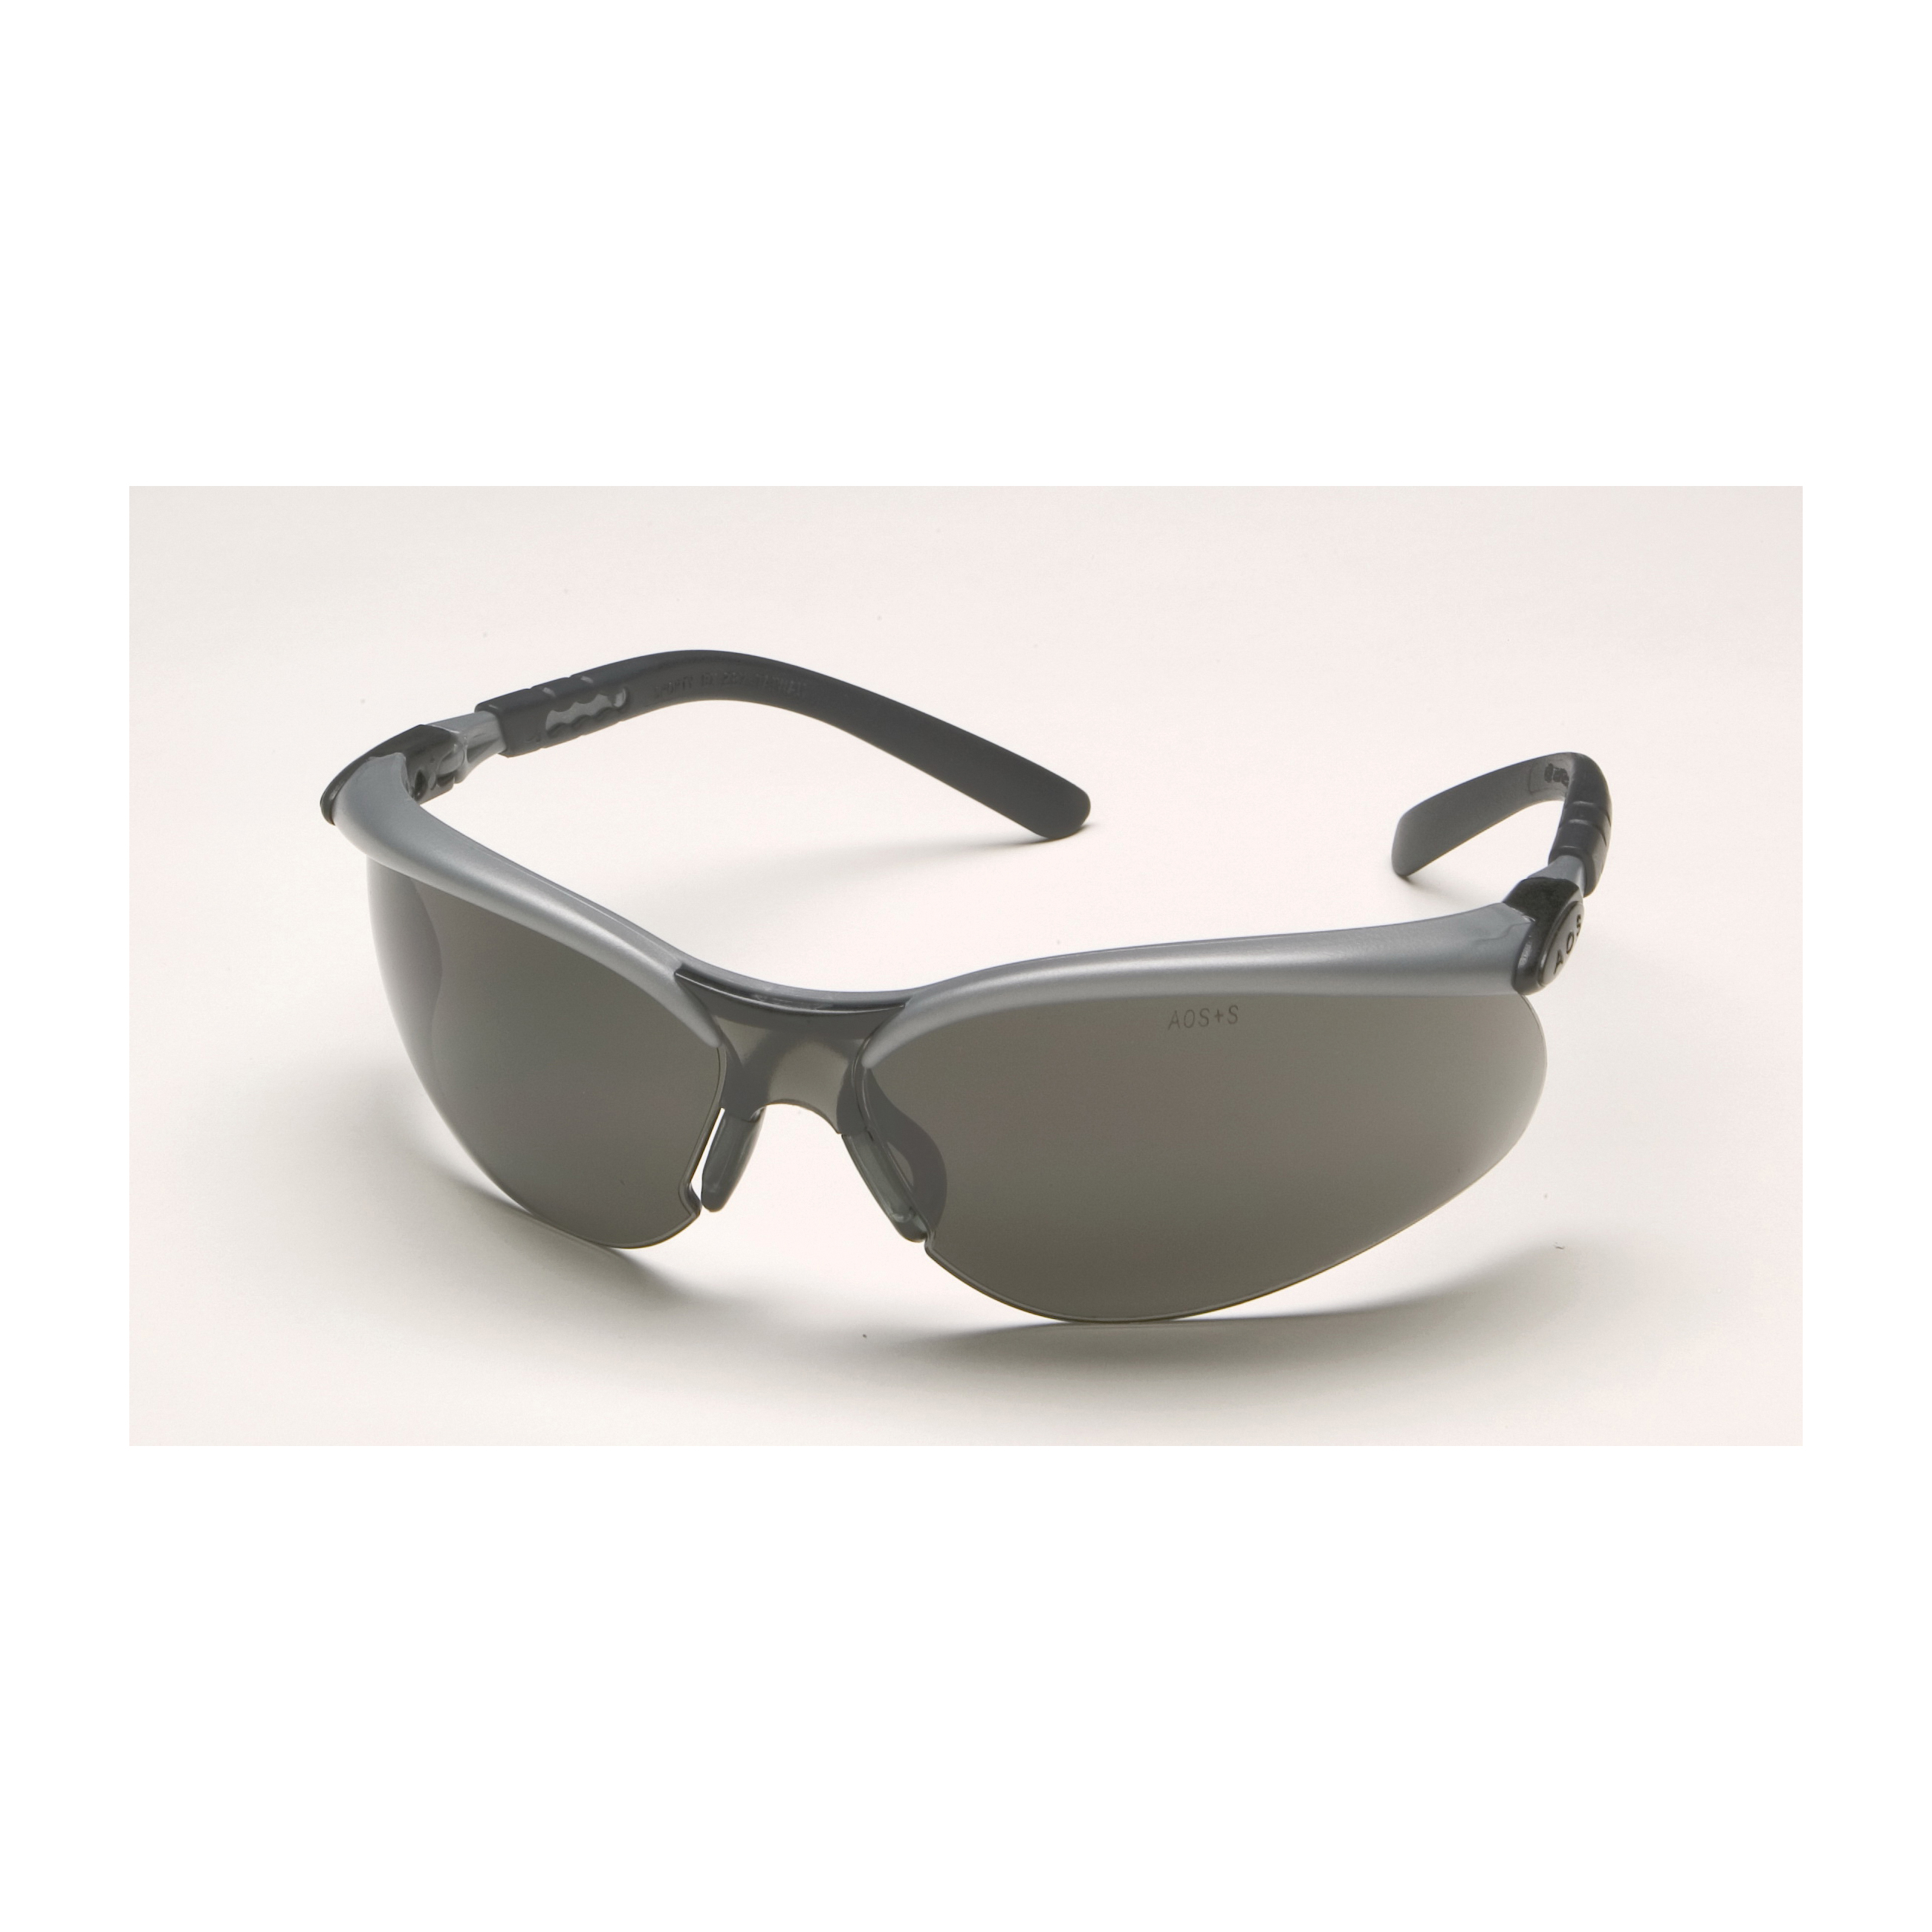 3M™ BX™ 078371-62053 Value Range Safety Glasses, Anti-Fog, Gray Lens, Half Framed Frame, Black/Silver, Plastic Frame, Polycarbonate Lens, ANSI Z87.1, CSA Z94.3-2007